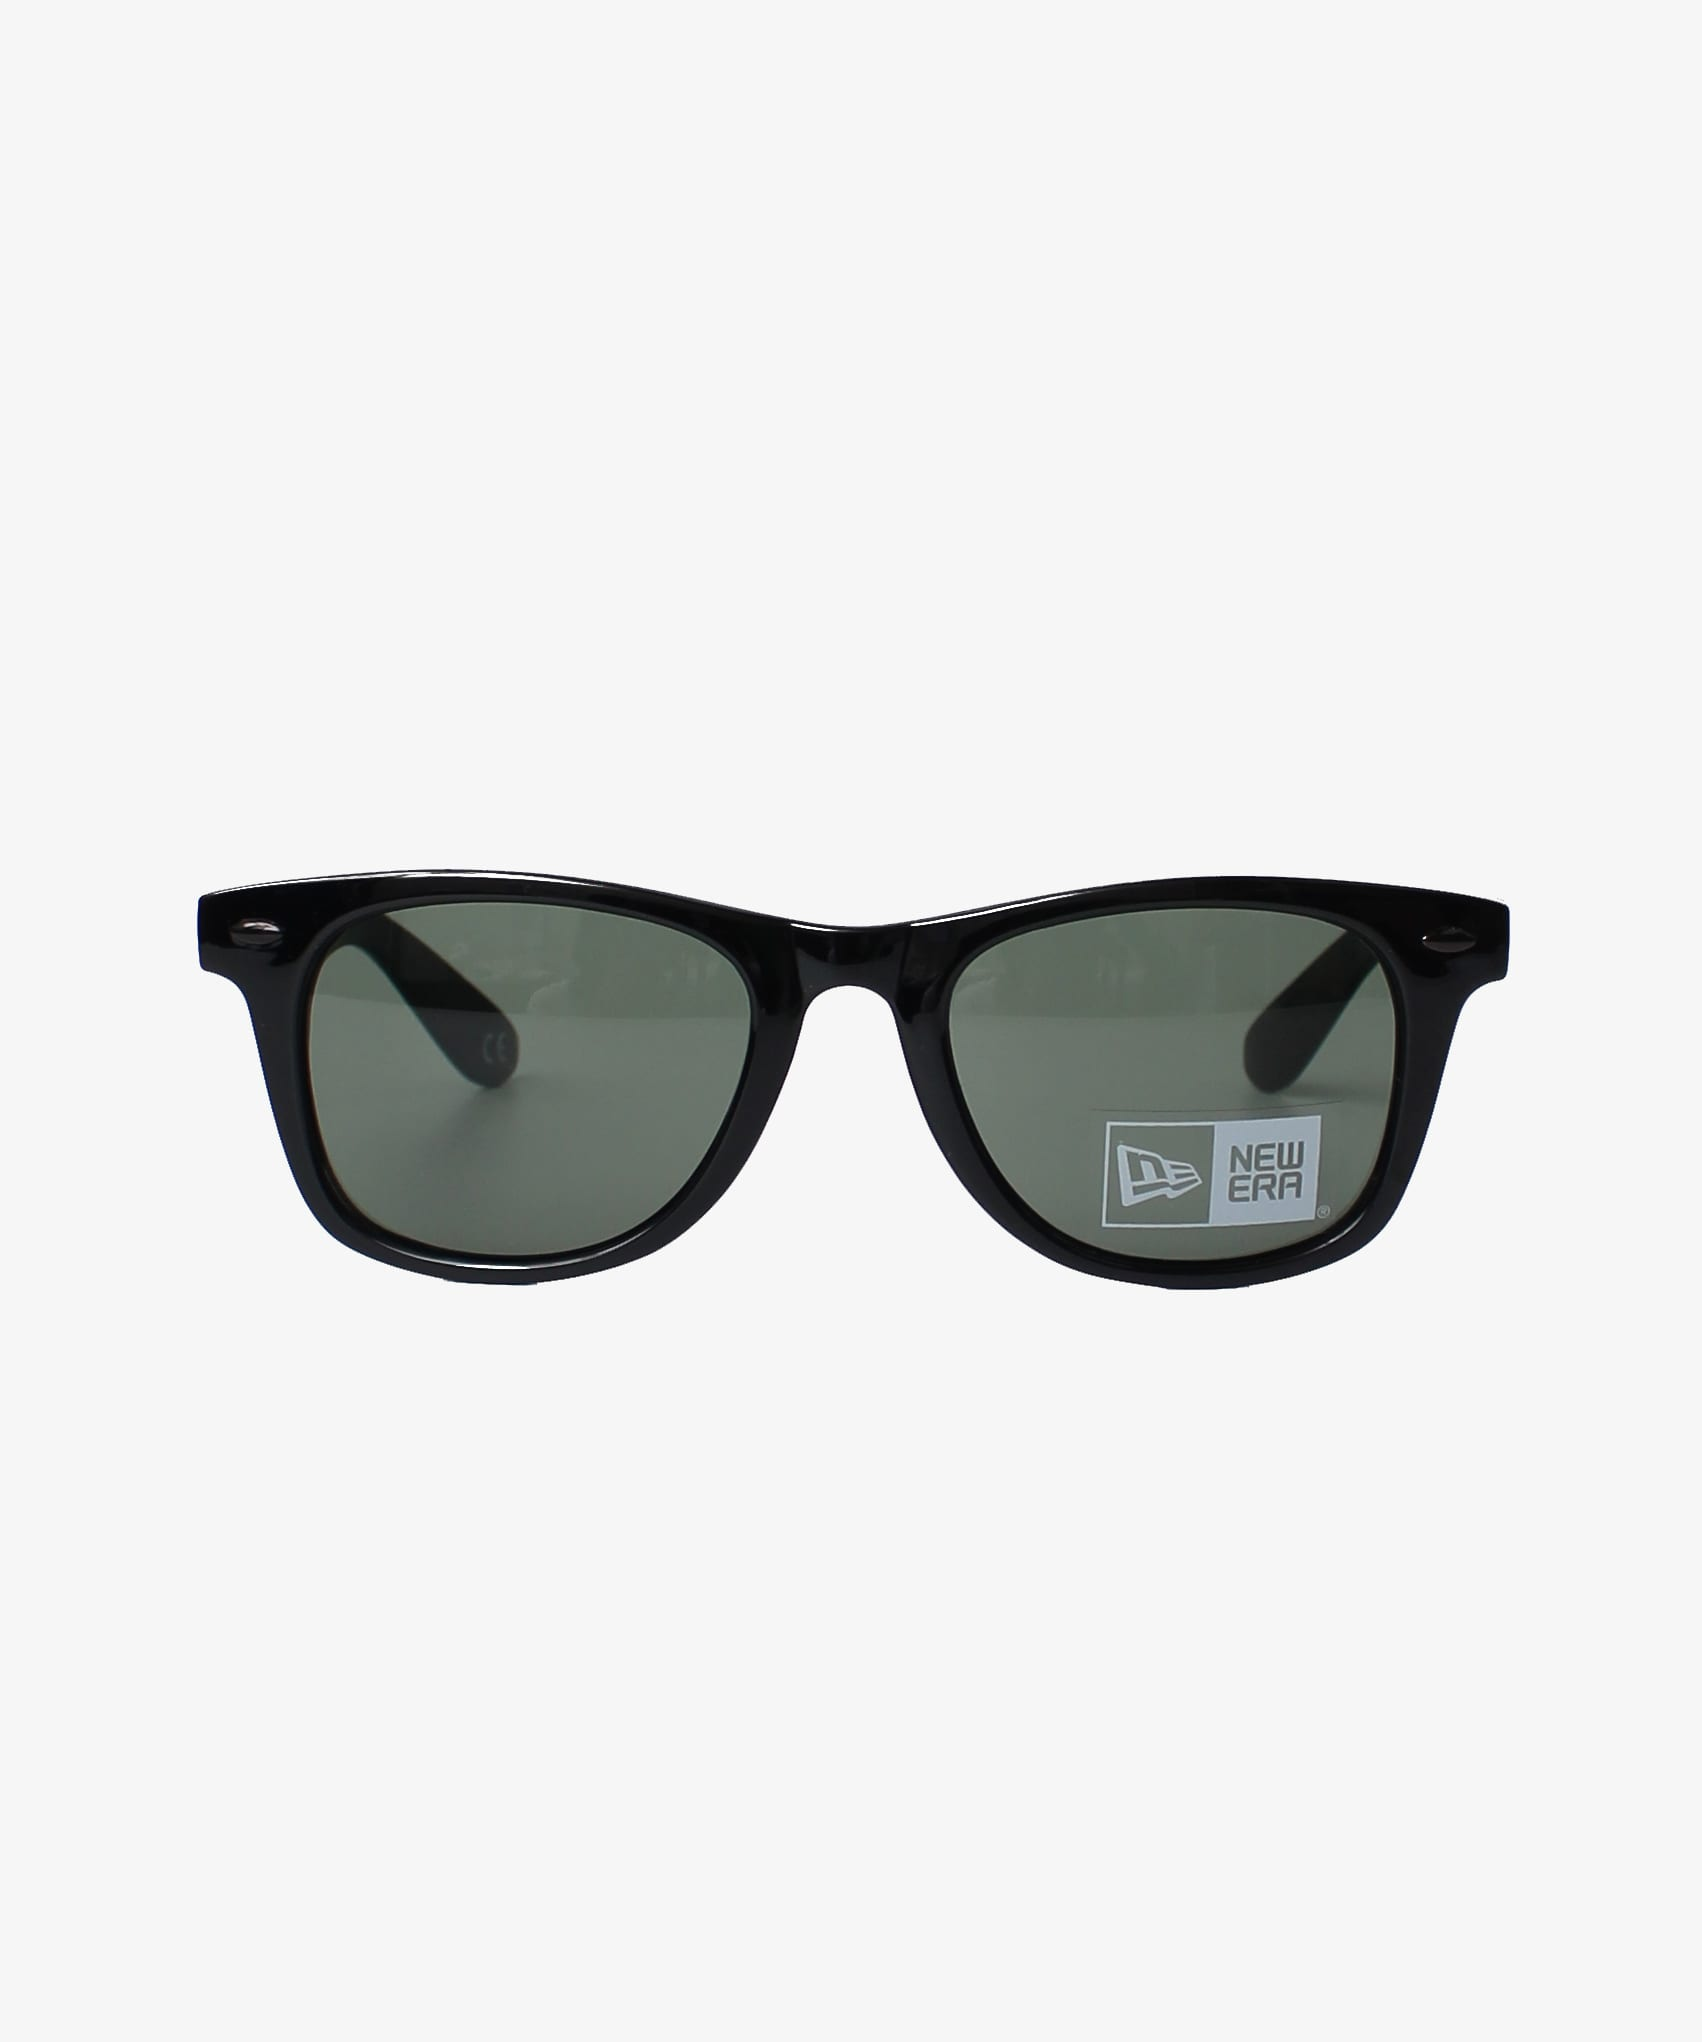 NEW ERA SUNGLASSES SQUARE